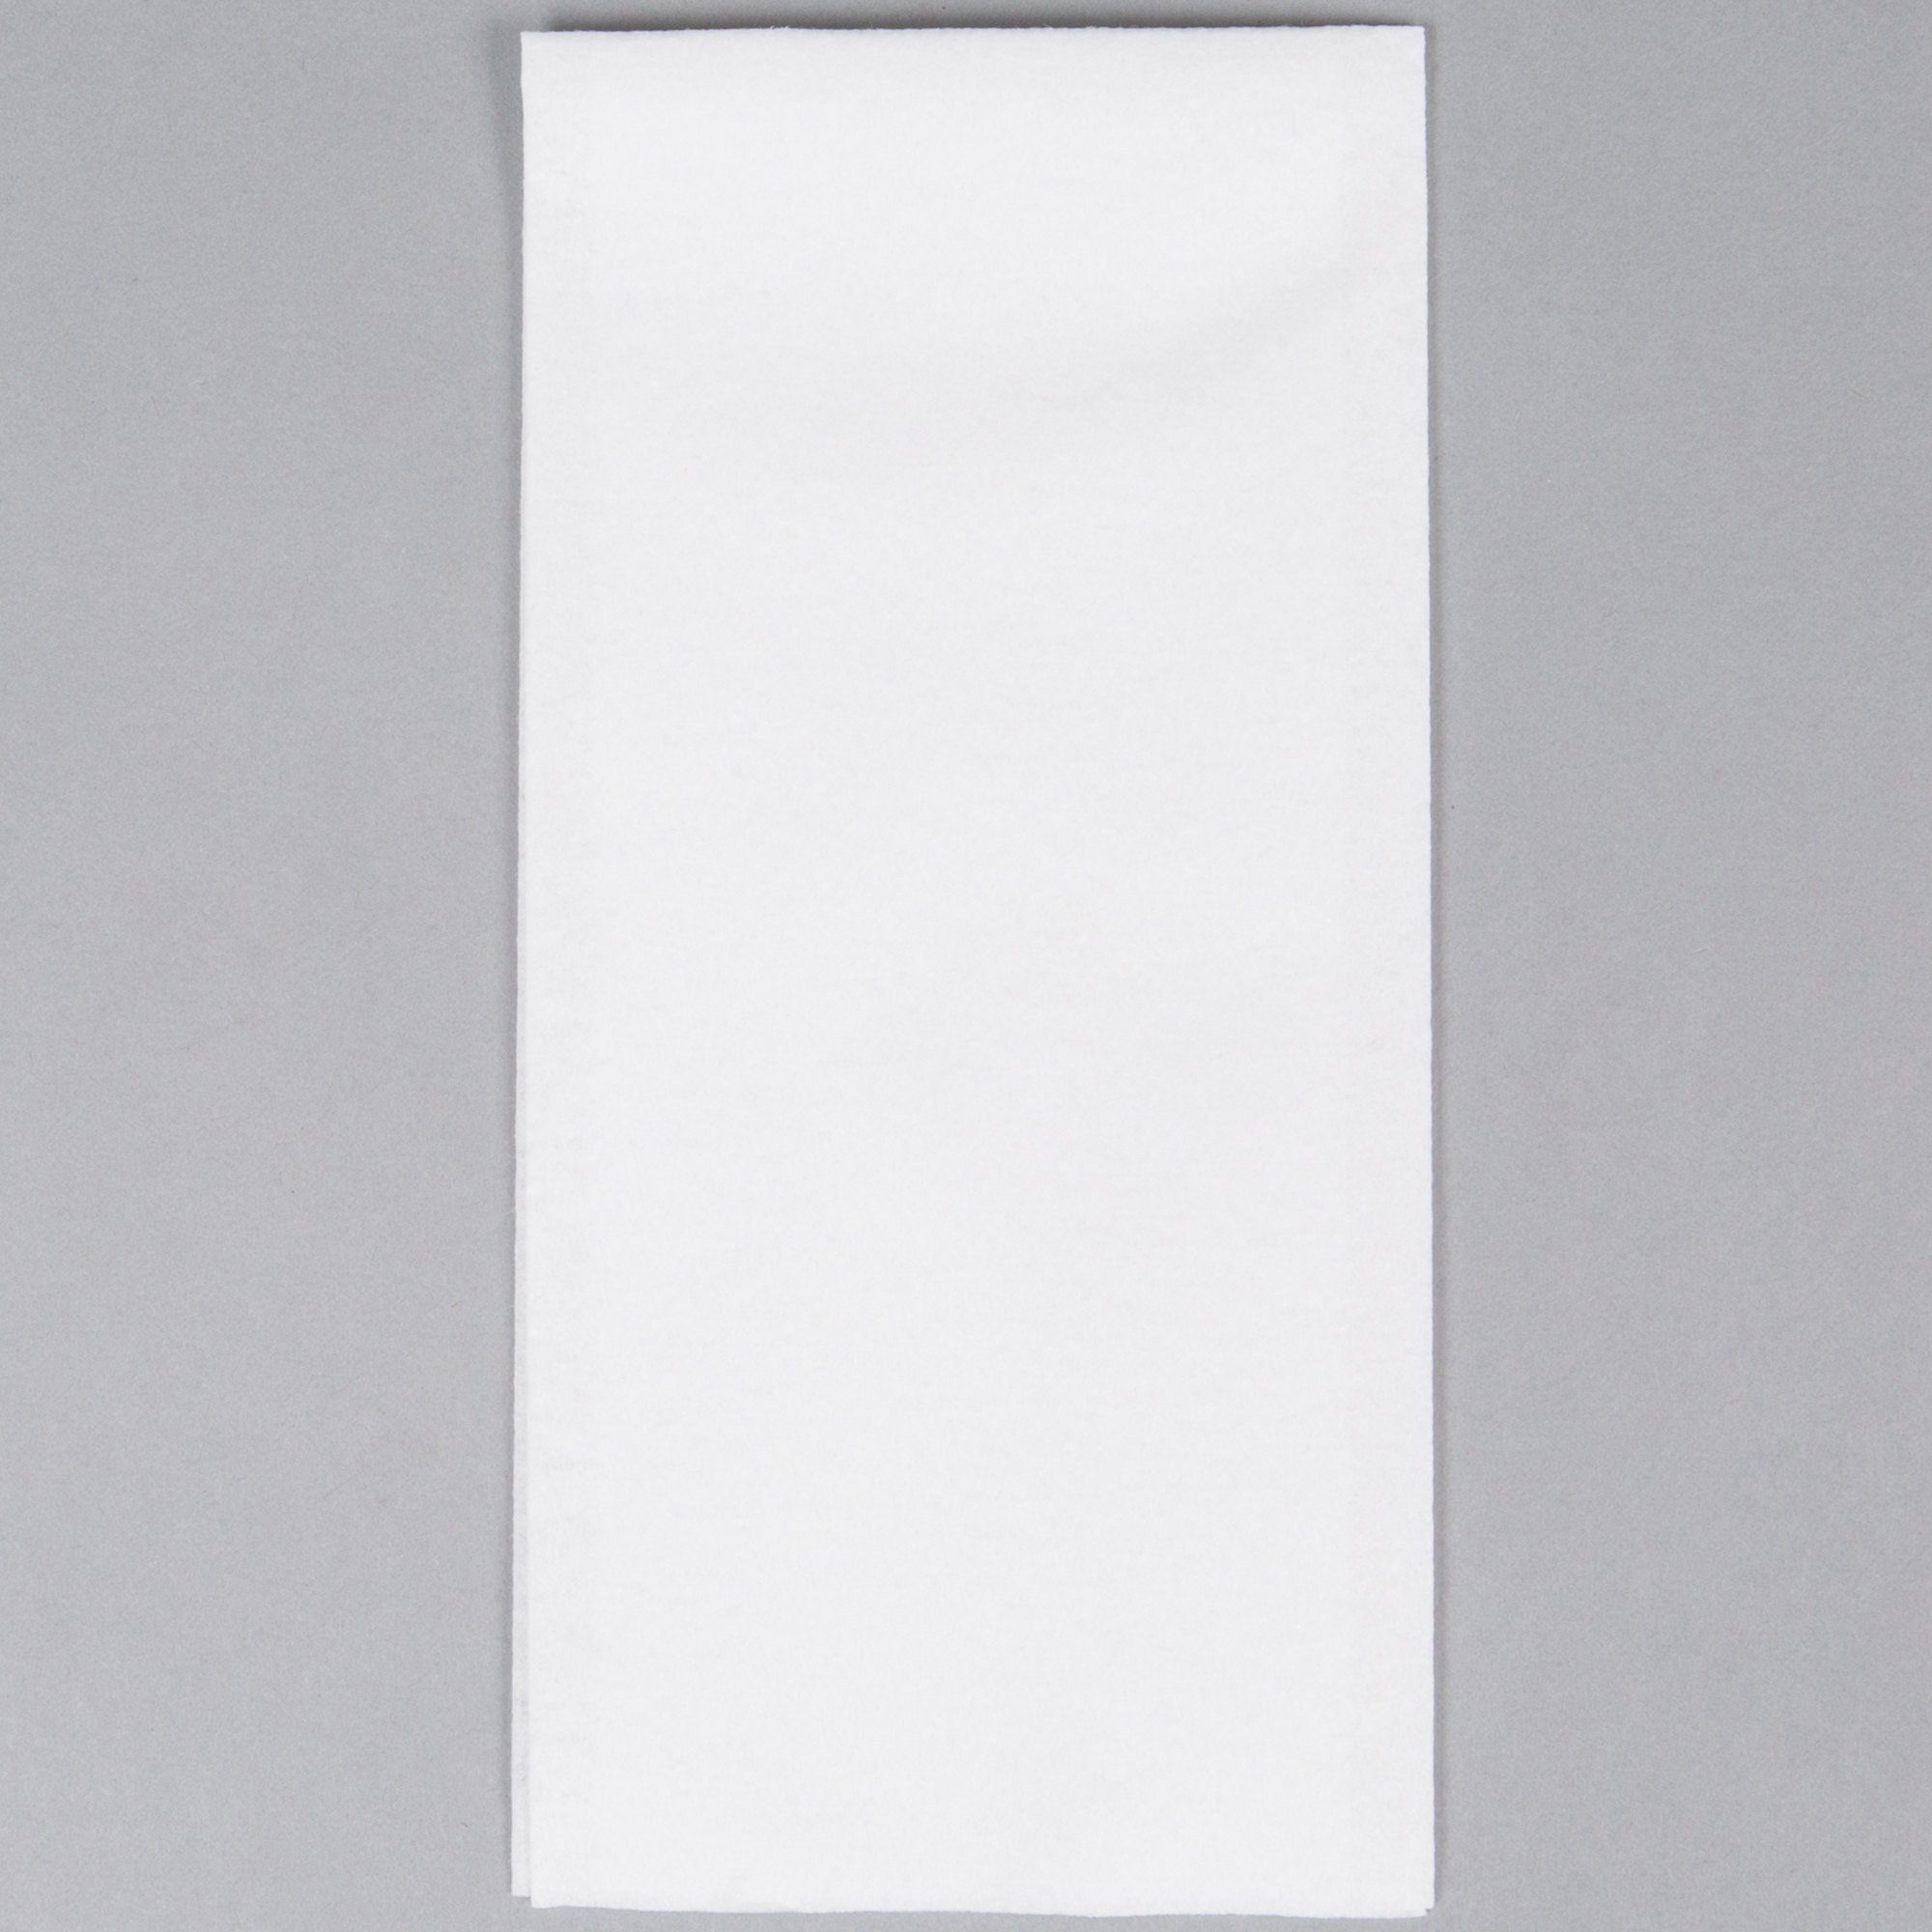 Hoffmaster 856499 Linen-Like 12'' x 17'' White 1/6 Fold Guest Towel - 500/Case